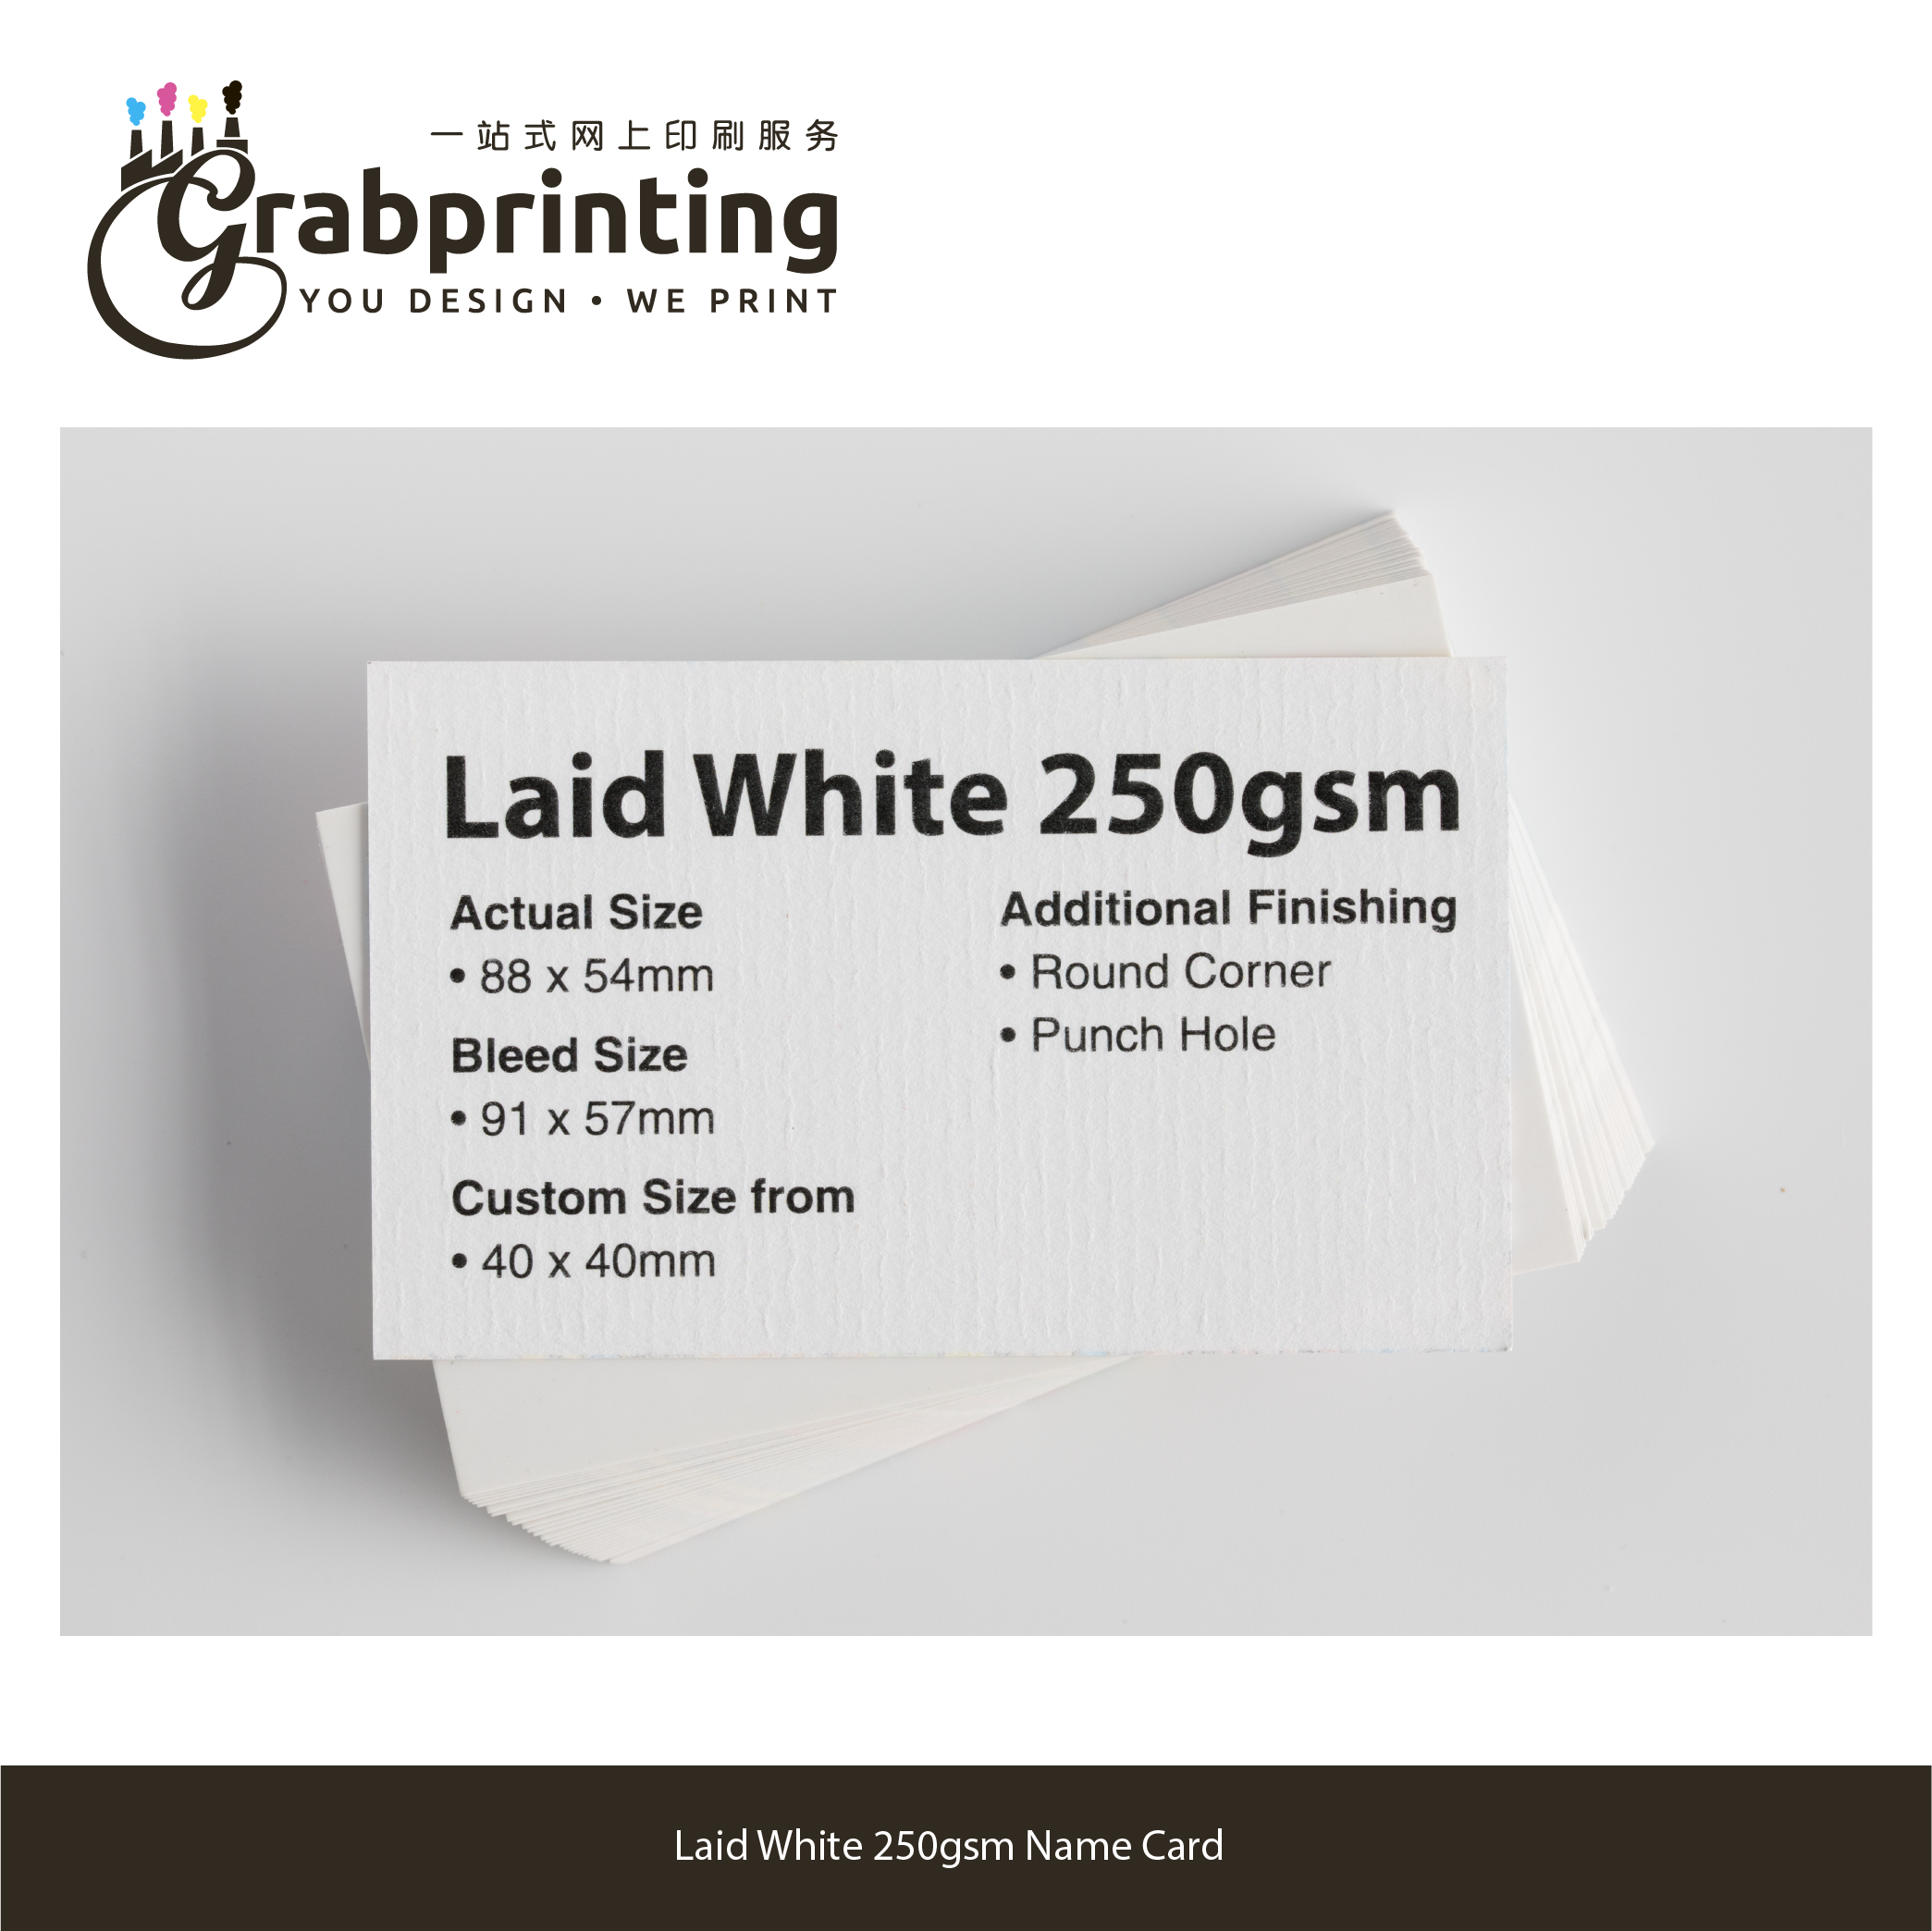 name cards Name Card (23 materials to choose from) grabprinting 33 Laid White 250gsm Name Card 501px 501px